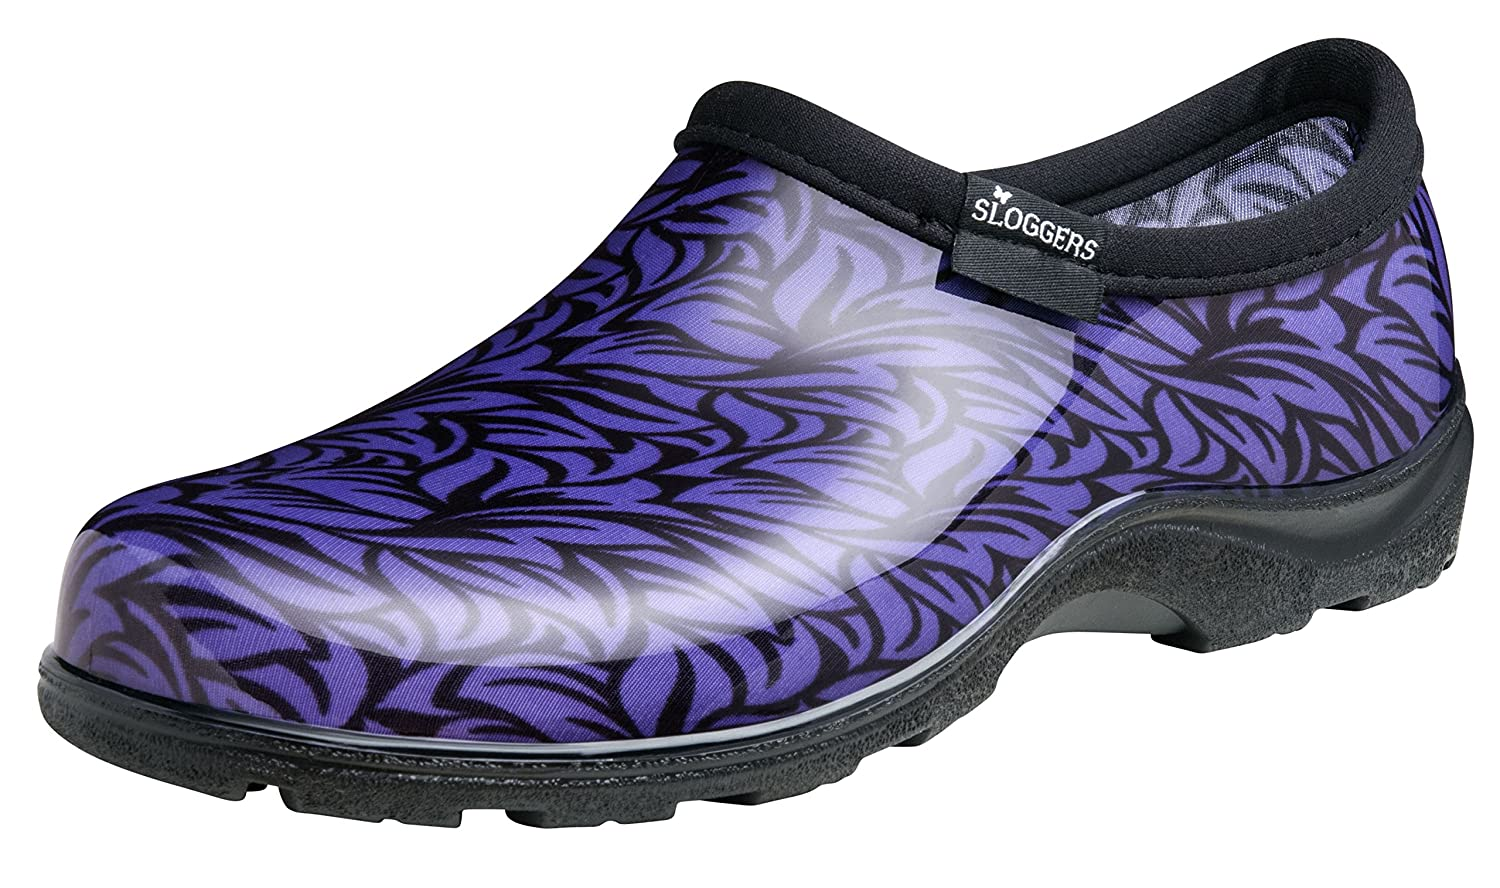 Sloggers Women's Waterproof Rain and Garden Shoe with Comfort Insole, Casual Floral Purple, Size 6, Style 5117FLP06 B01H7X98UA 6|Casual Floral Purple